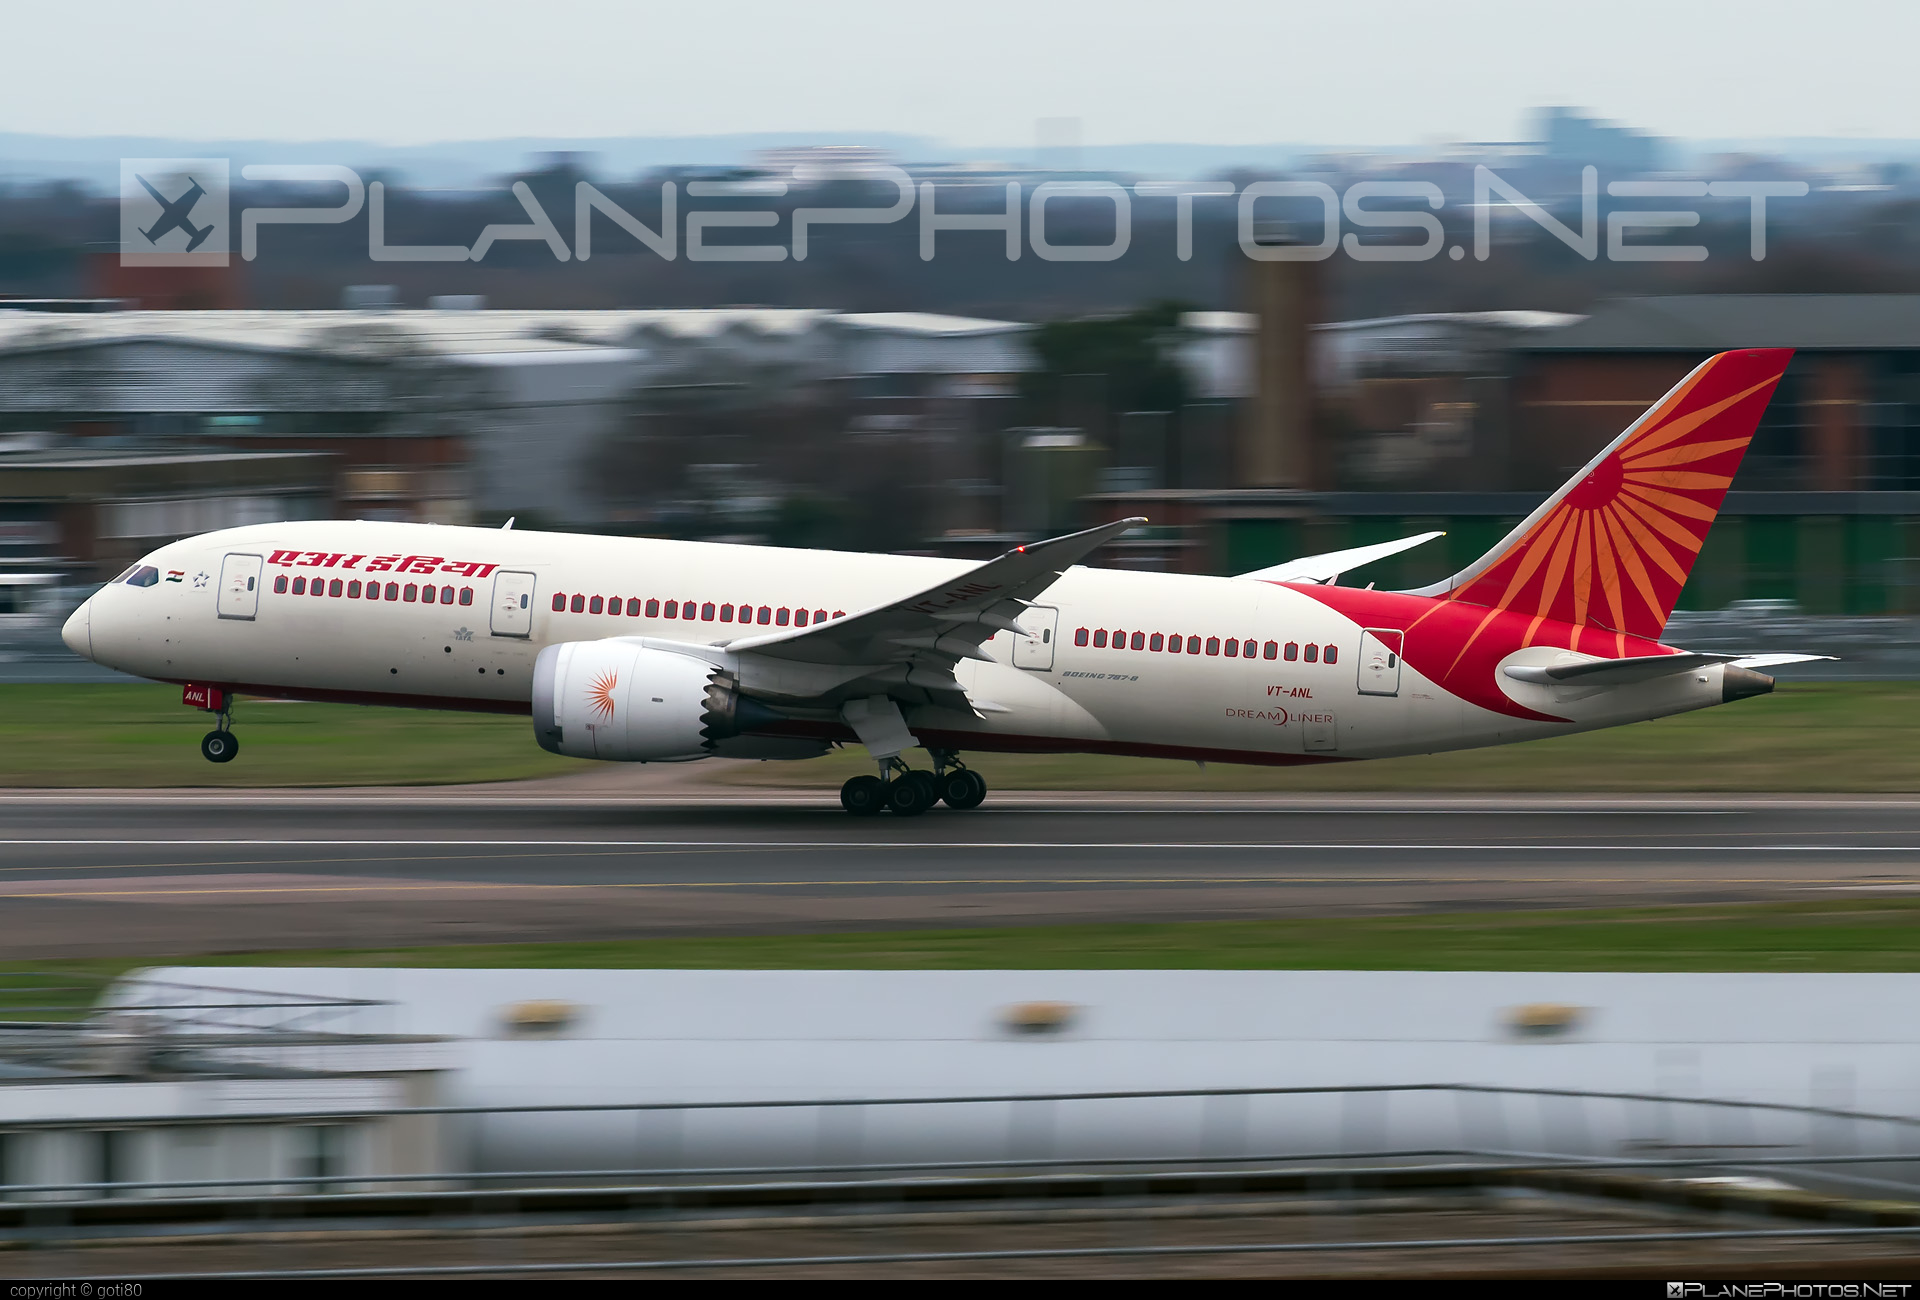 Boeing 787-8 Dreamliner - VT-ANL operated by Air India #b787 #boeing #boeing787 #dreamliner